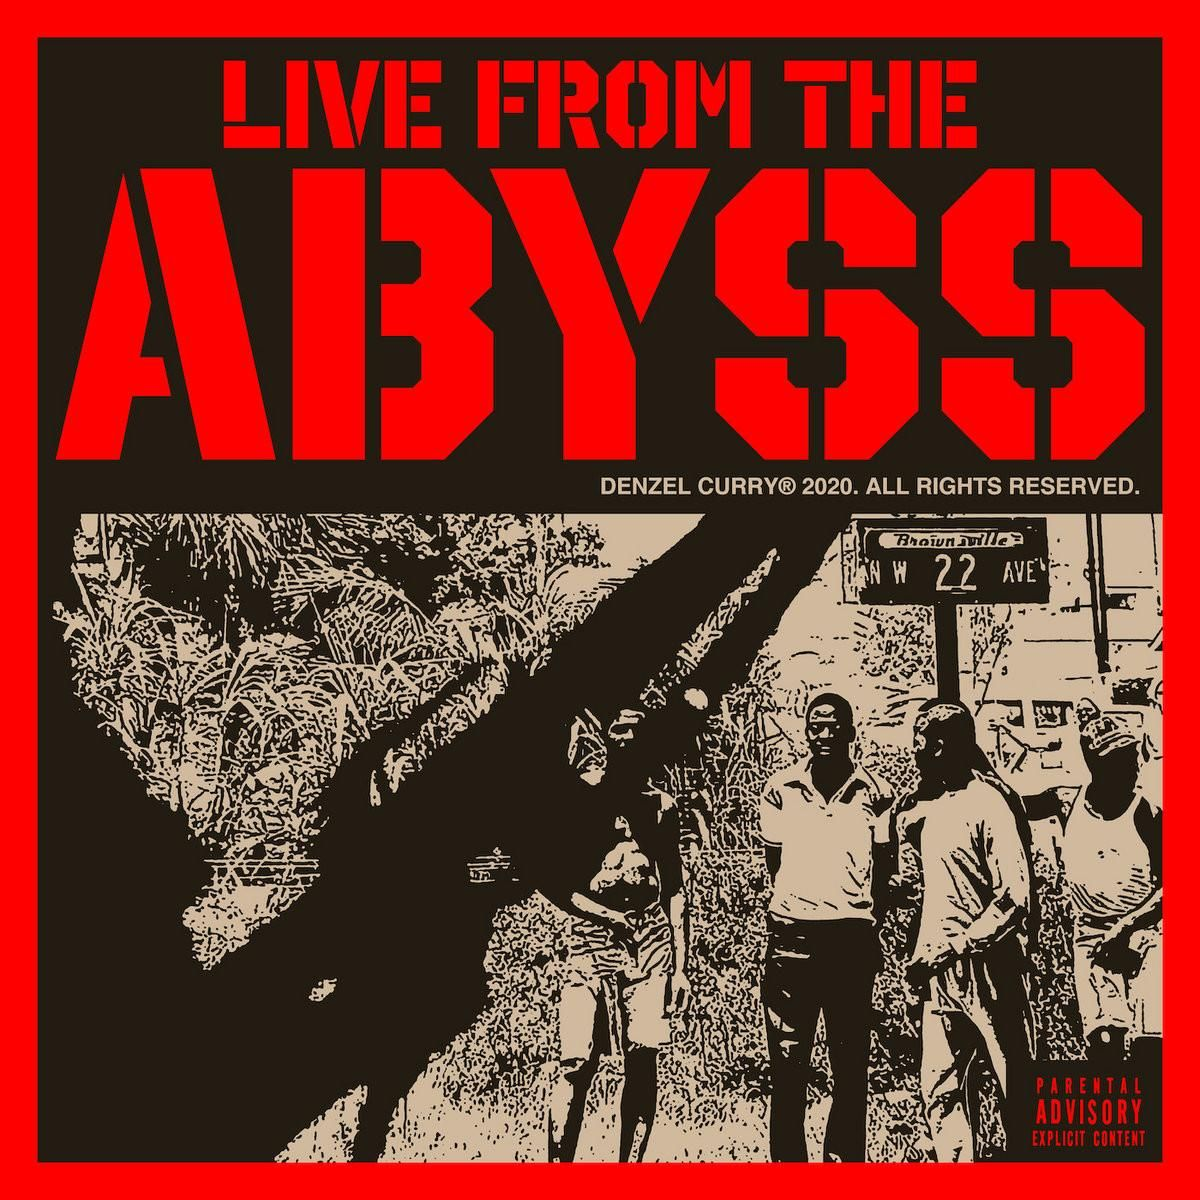 Live From The Abyss Denzel Curry In 2020 Denzel Curry Popular Music Videos New Music Releases